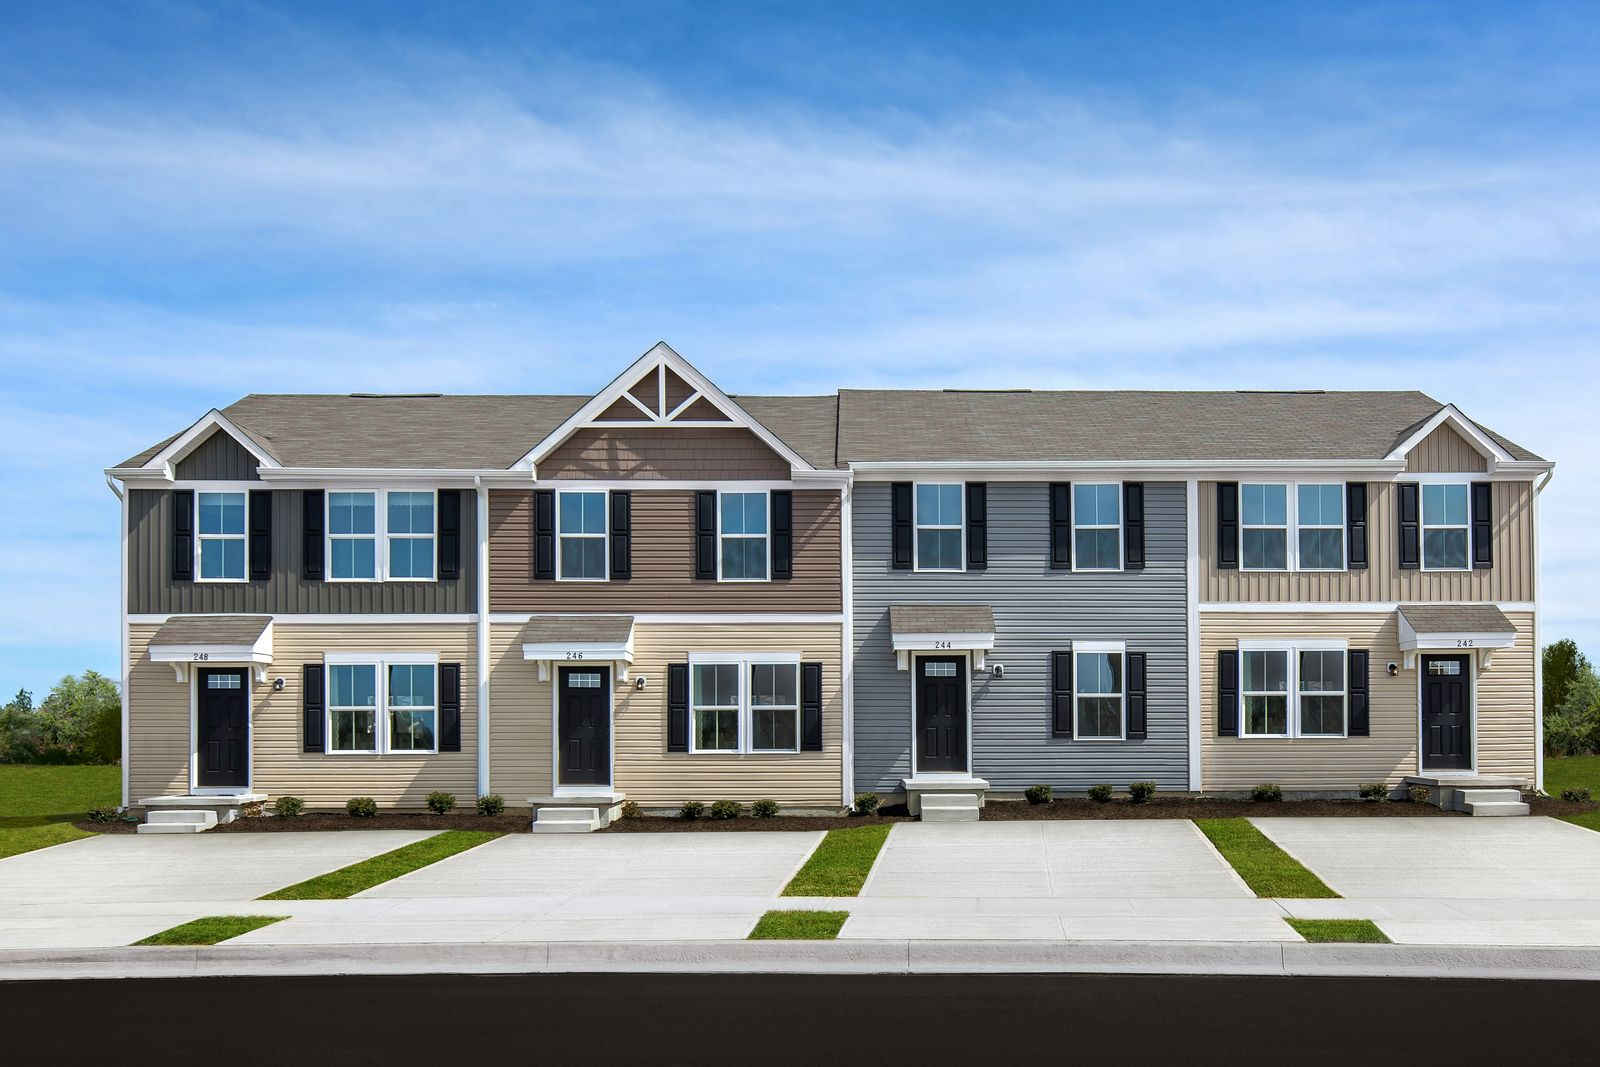 LAST CHANCE TO own a new townhome in Anderson for the same or less than rent!